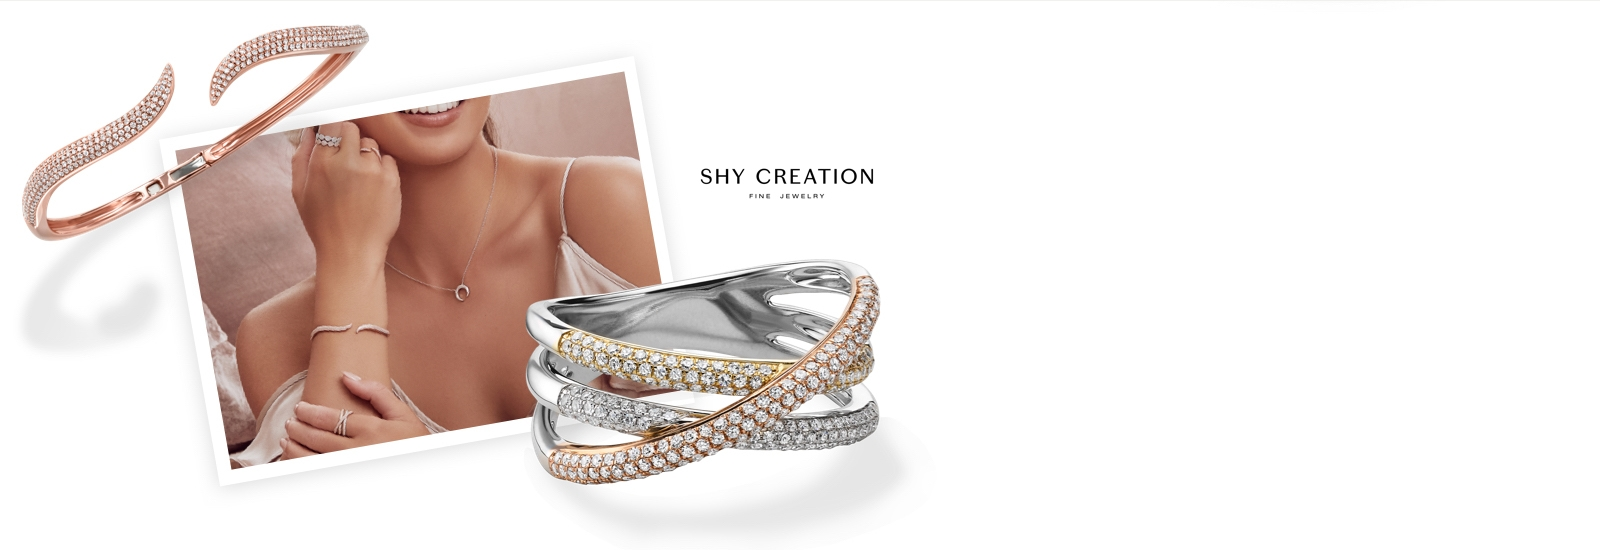 Woman wearing diamond Shy Creation rings, bracelets and necklace, featuring a rose gold and diamond bracelet and multi-tone gold ring. Shop Shy Creation jewelry at Jared.